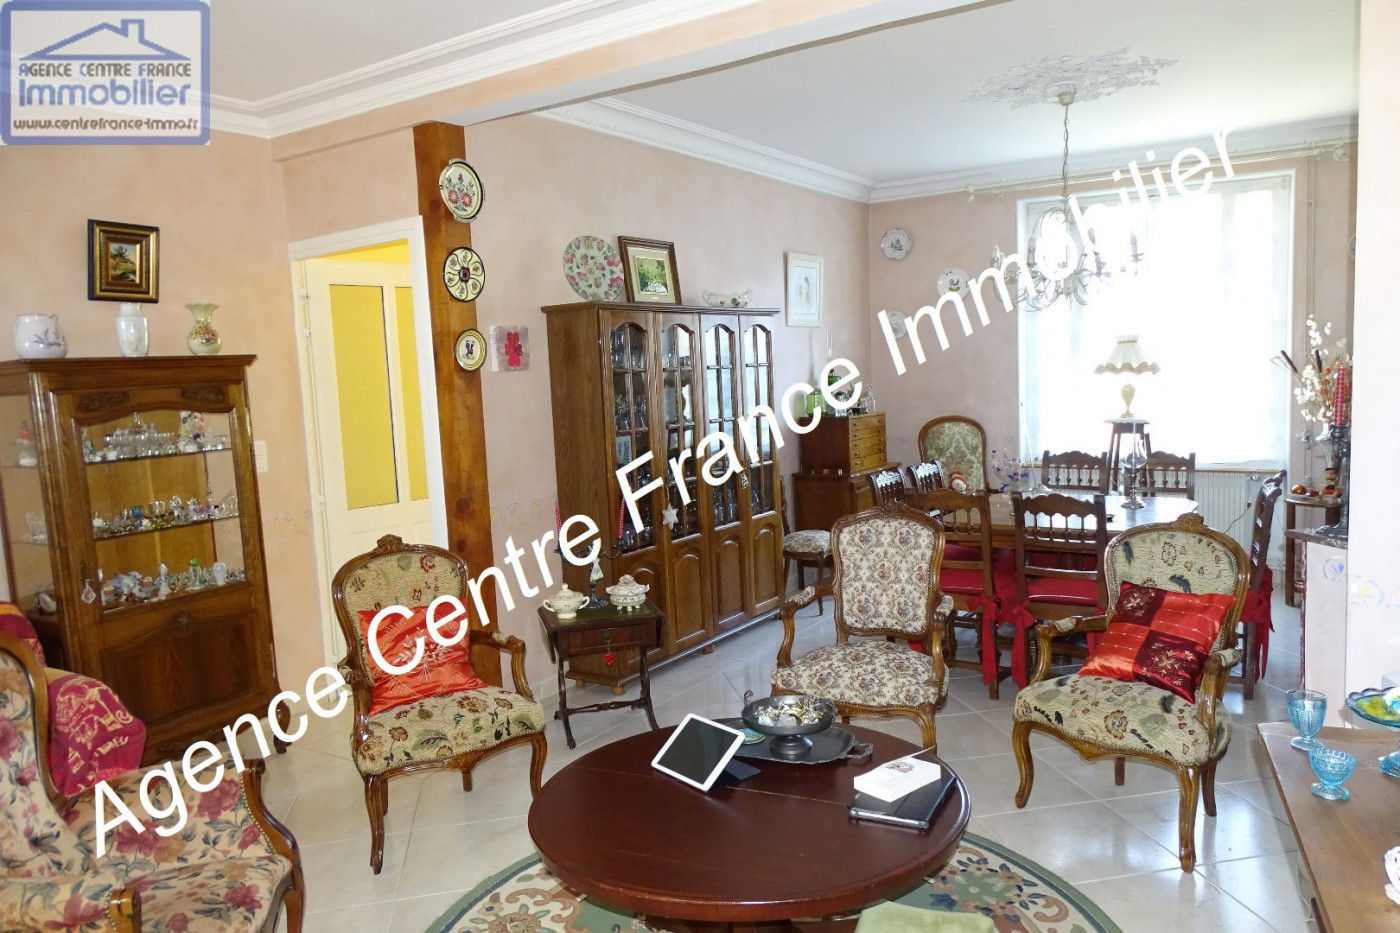 A vendre Bourges 030011128 Agence centre france immobilier